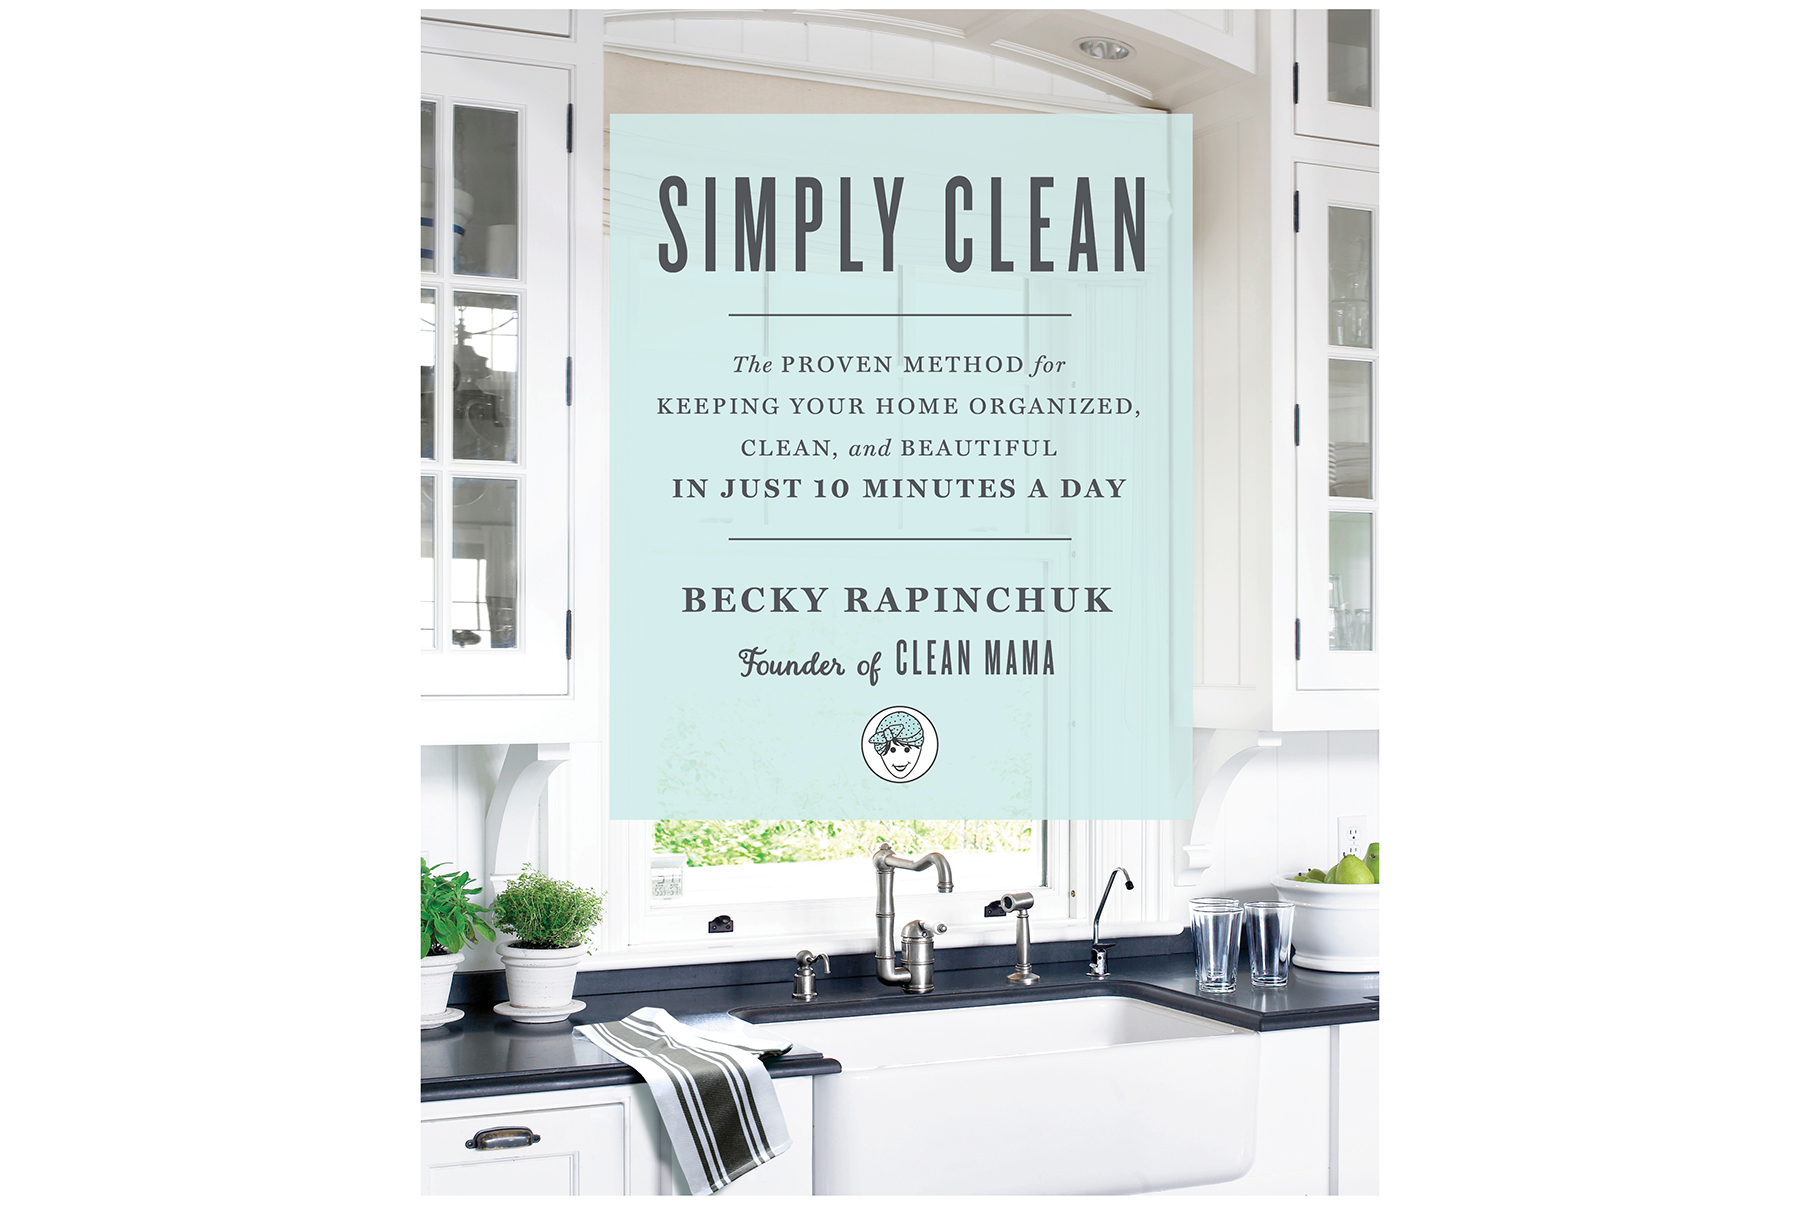 Simply Clean, by Becky Rapinchuk